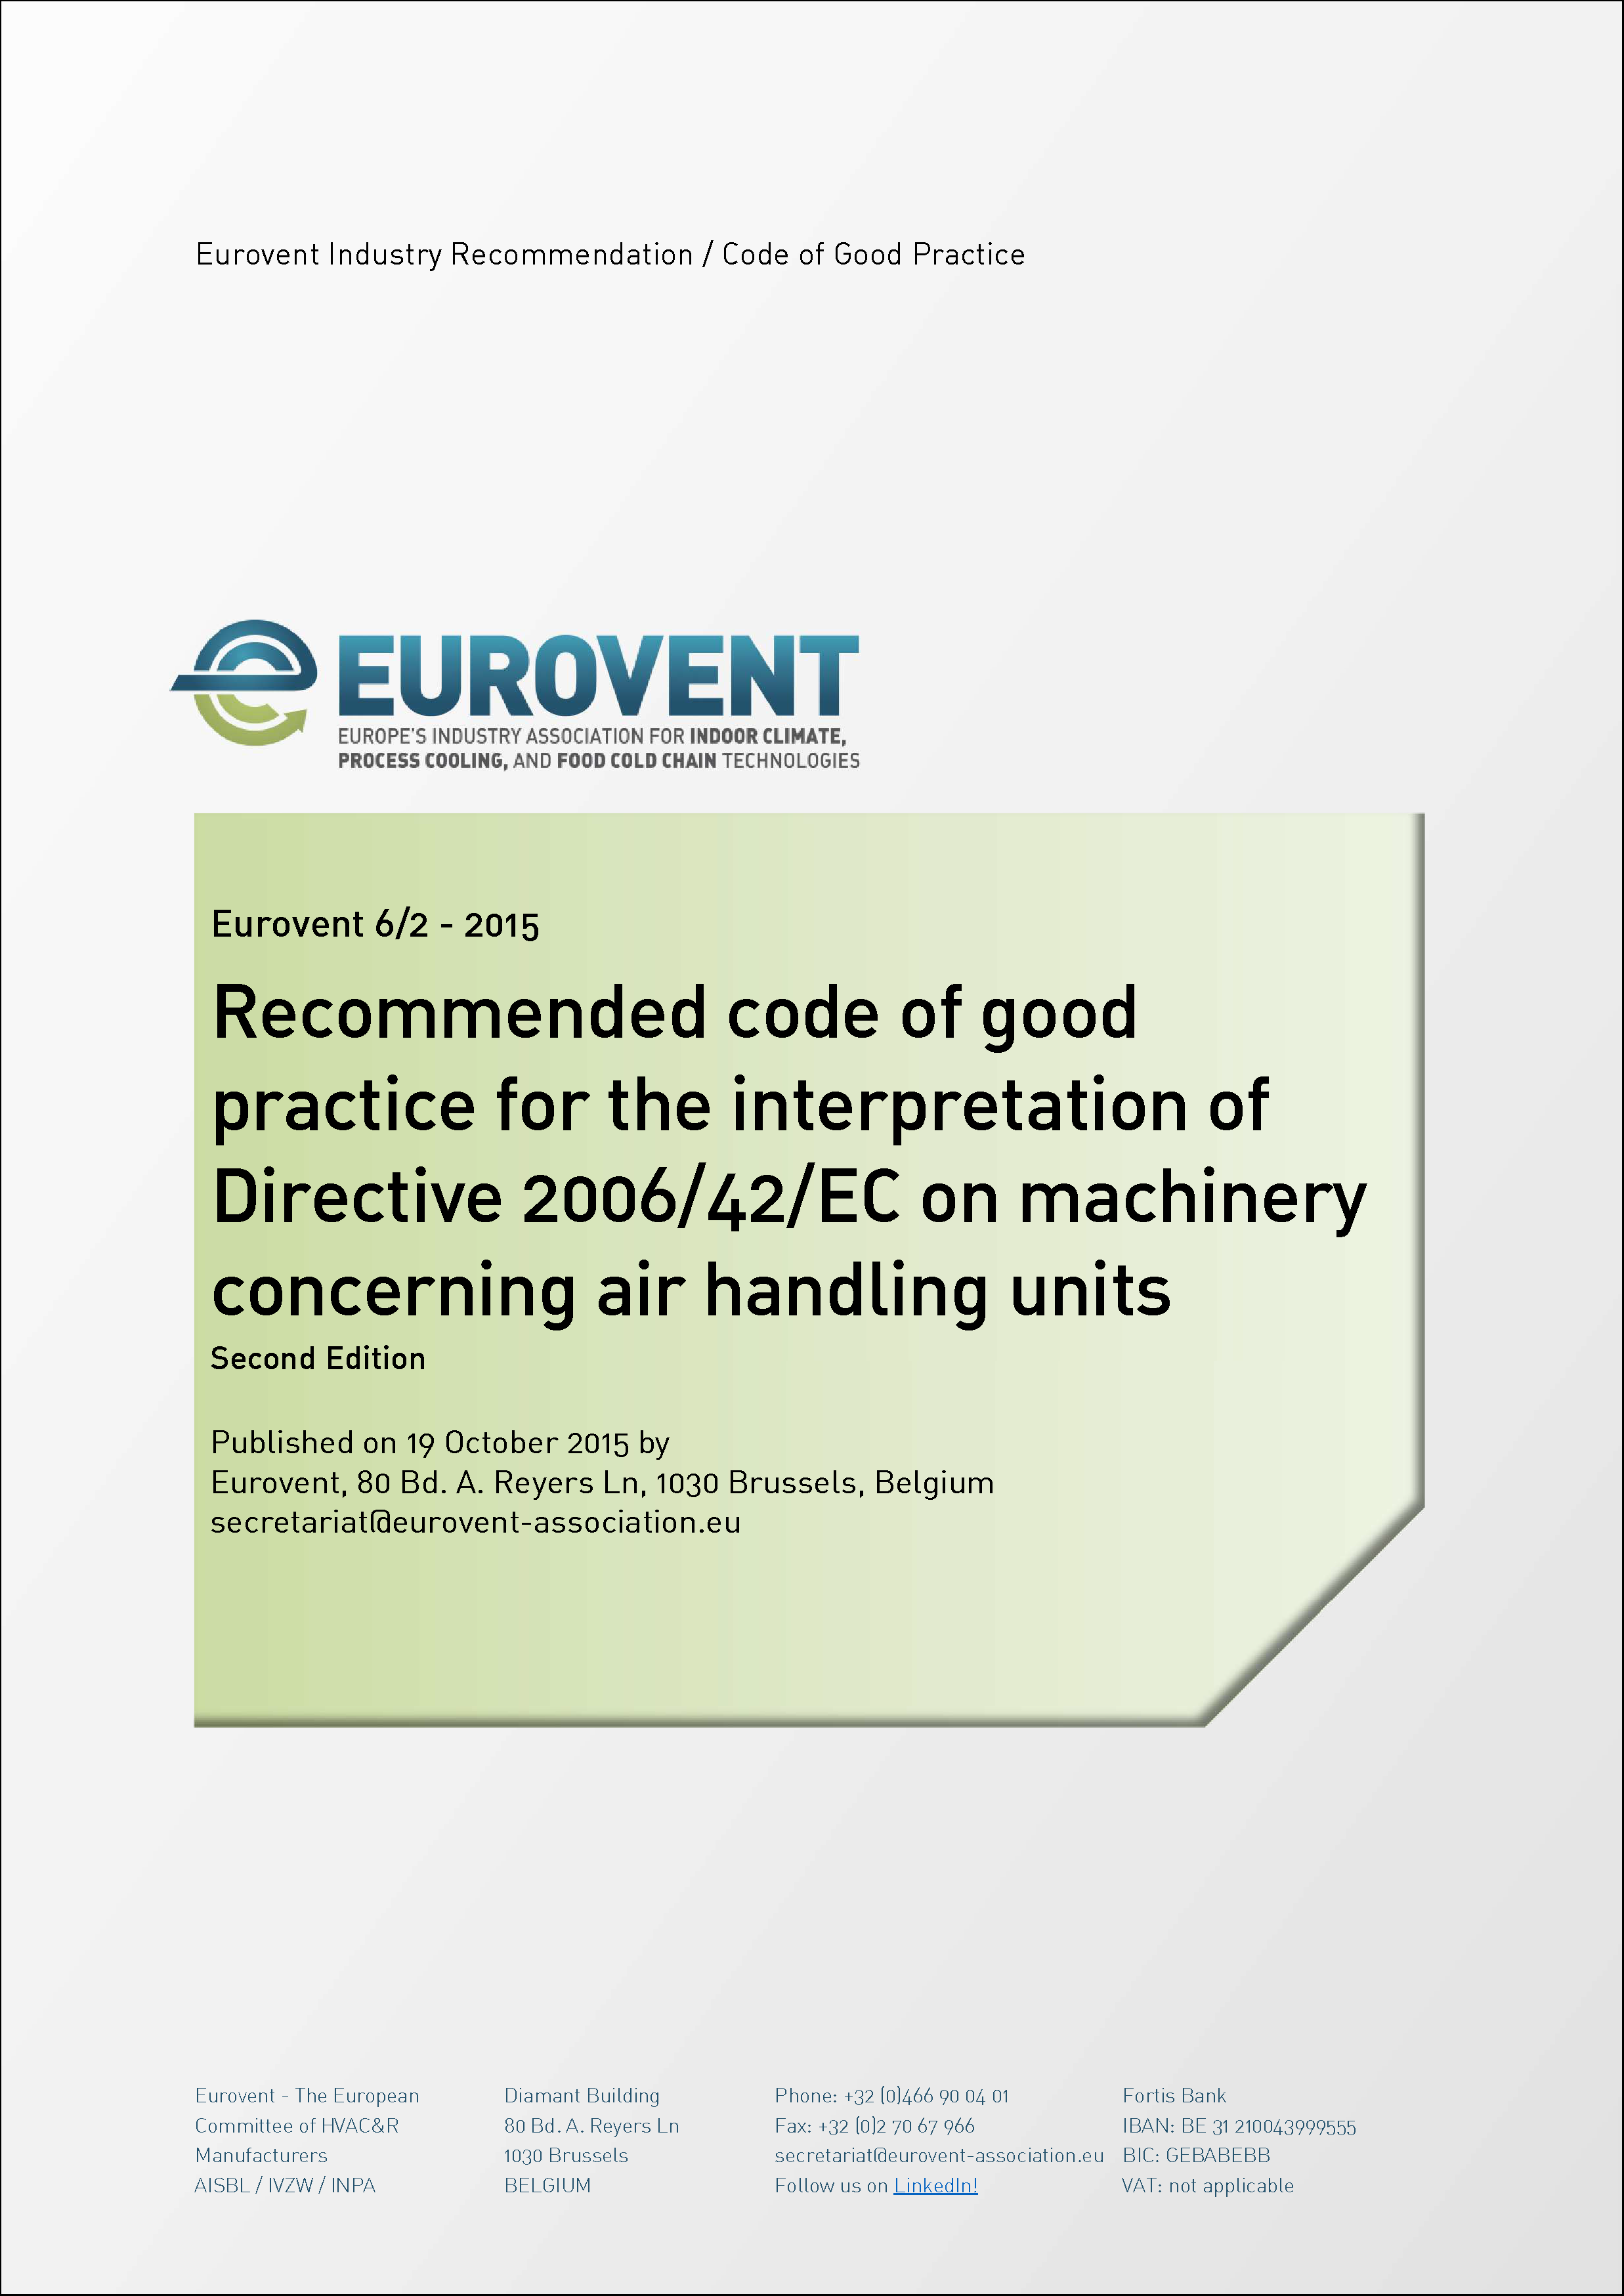 2015 - Recommended code of good practice for the interpretation of Directive 2006/42/EC on machinery concerning air handling units